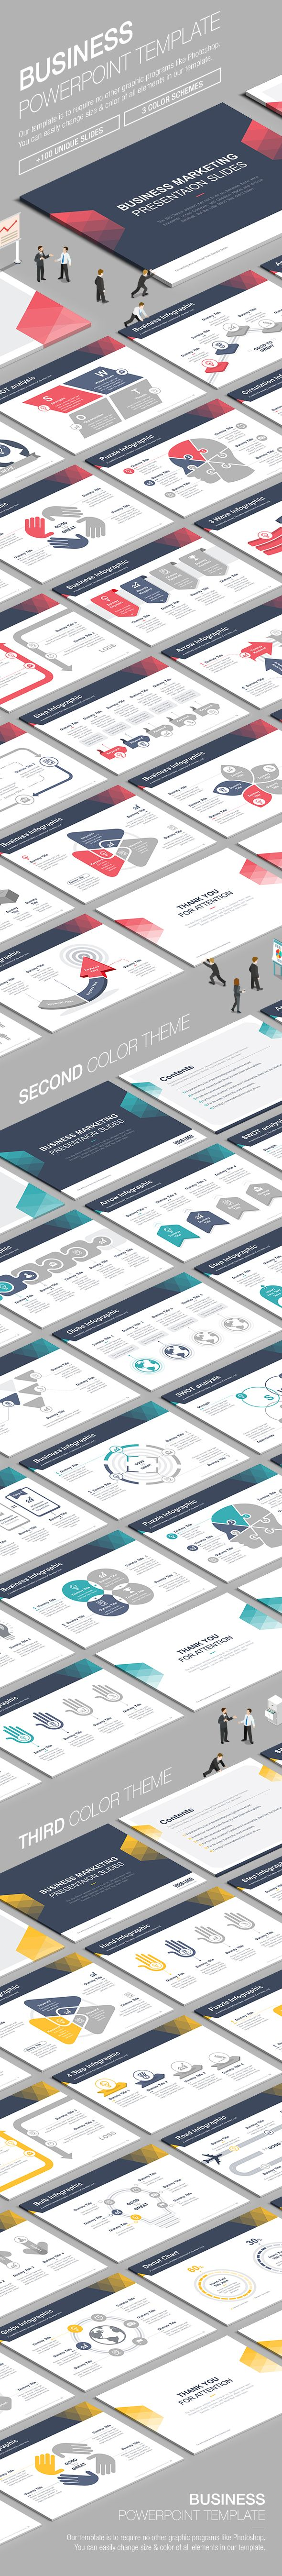 Business Powerpoint Template. Download here…